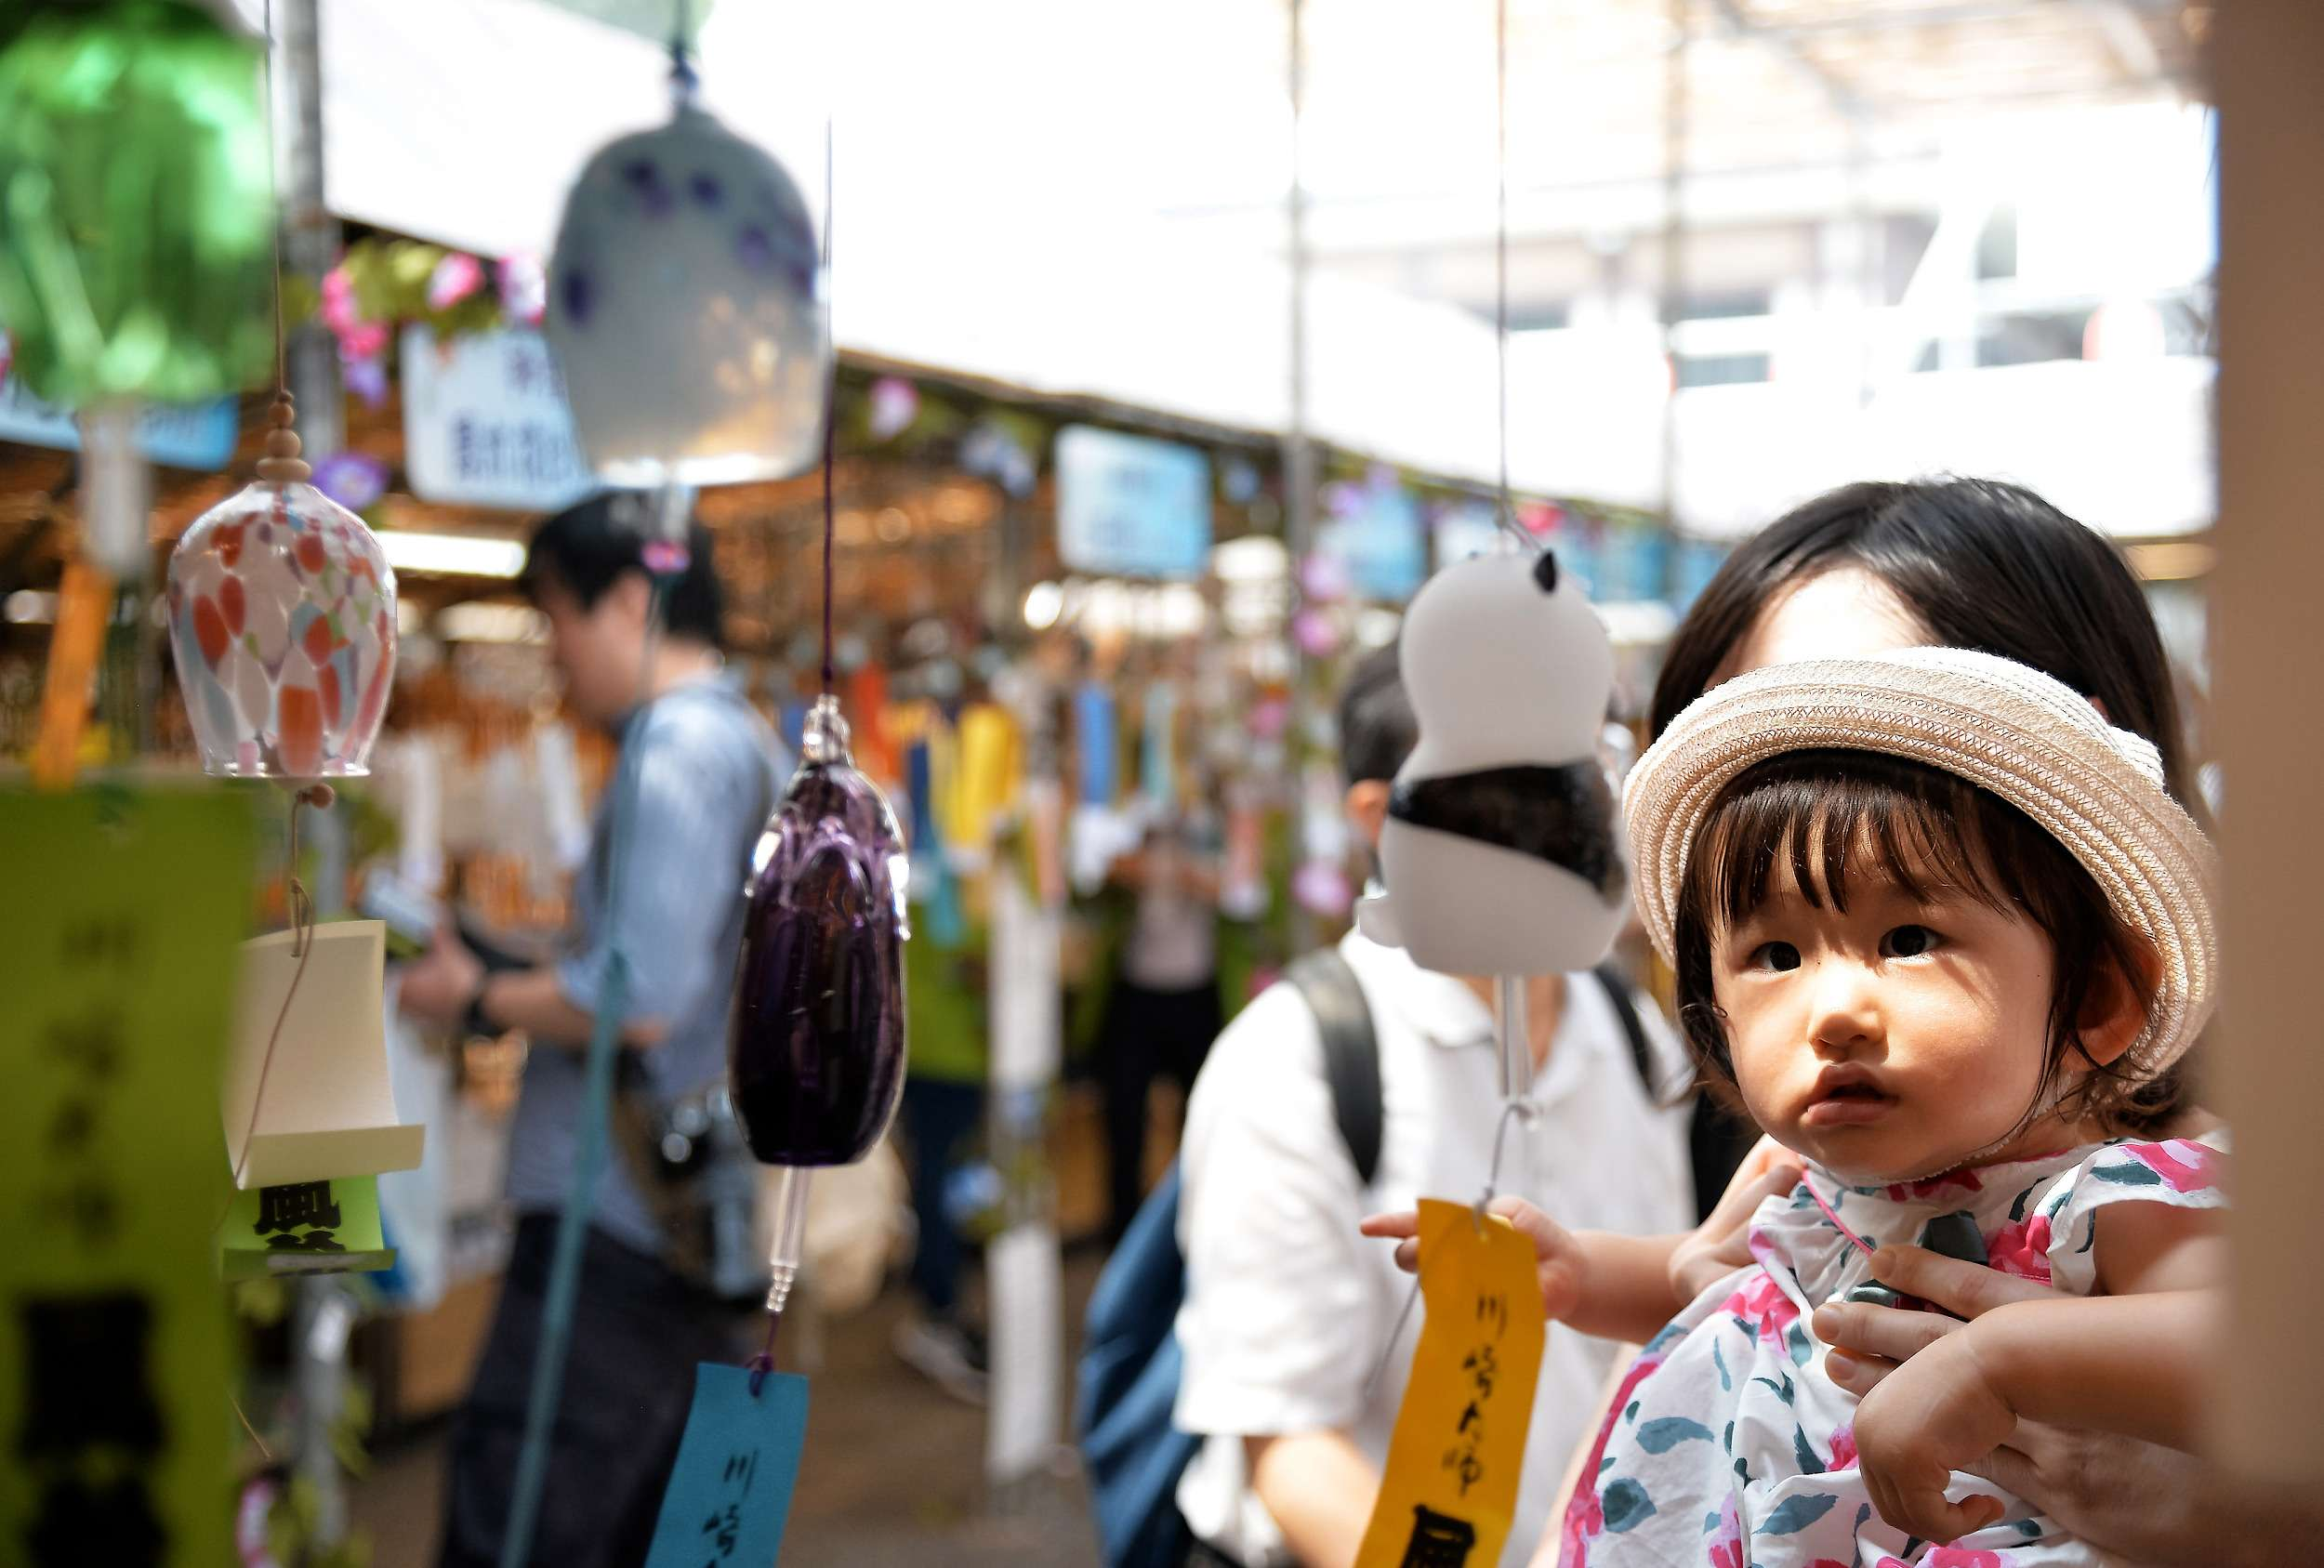 Wind chimes are displayed at the 'wind chimes market' in Japan